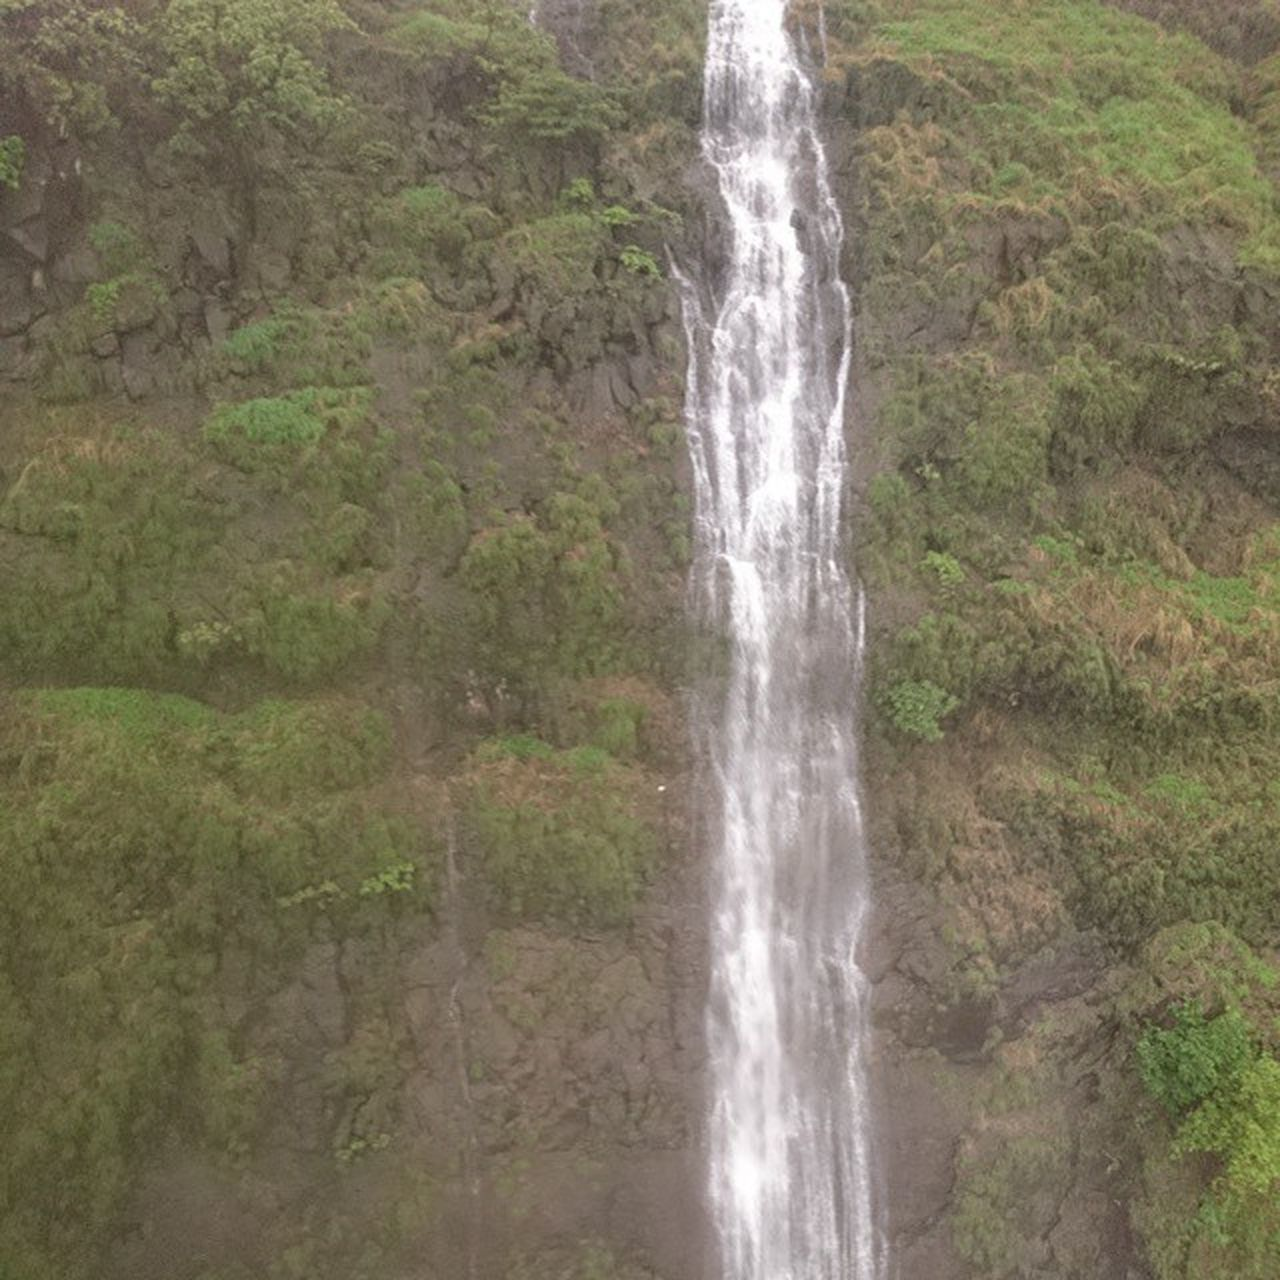 waterfall, nature, outdoors, beauty in nature, water, day, no people, motion, scenics, grass, sky